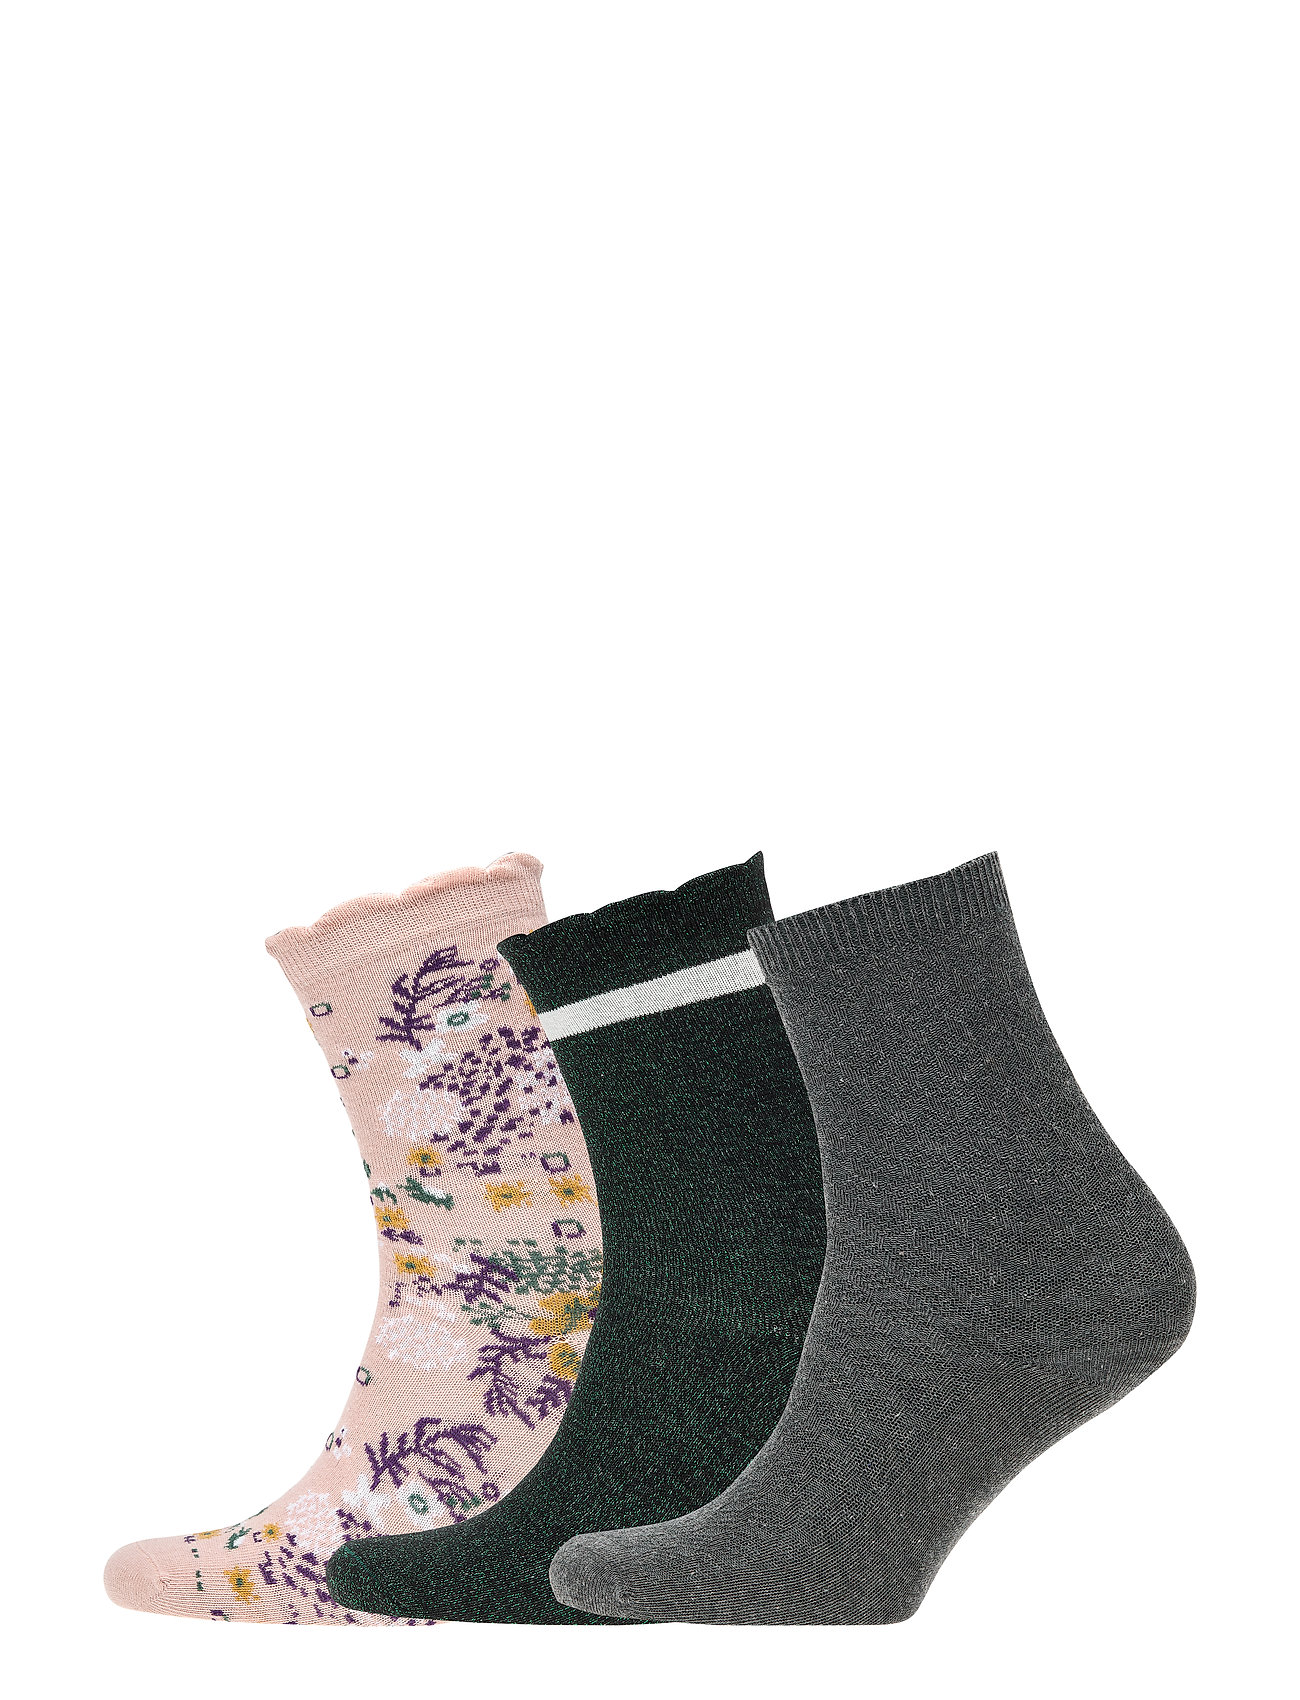 Creamie Socks 3-Pack - DARK GREY MELANGE